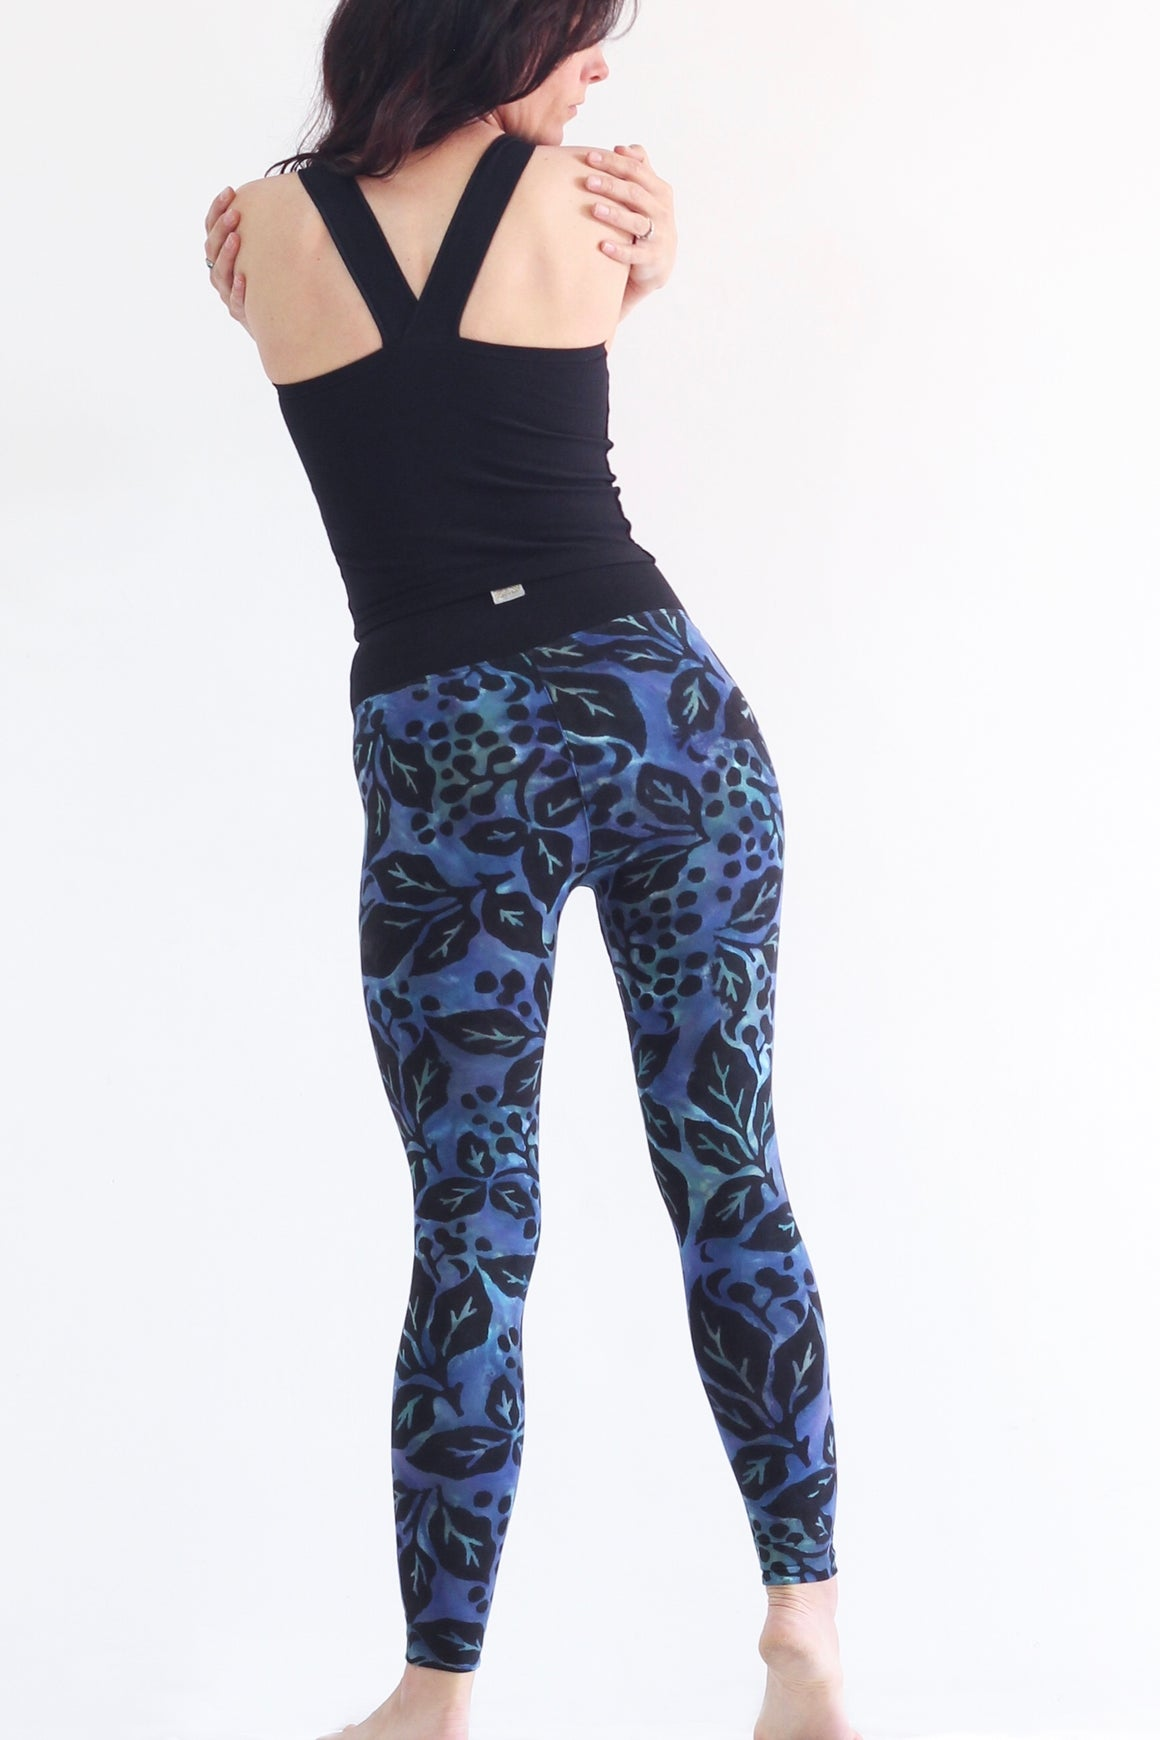 NightShade - Leggings